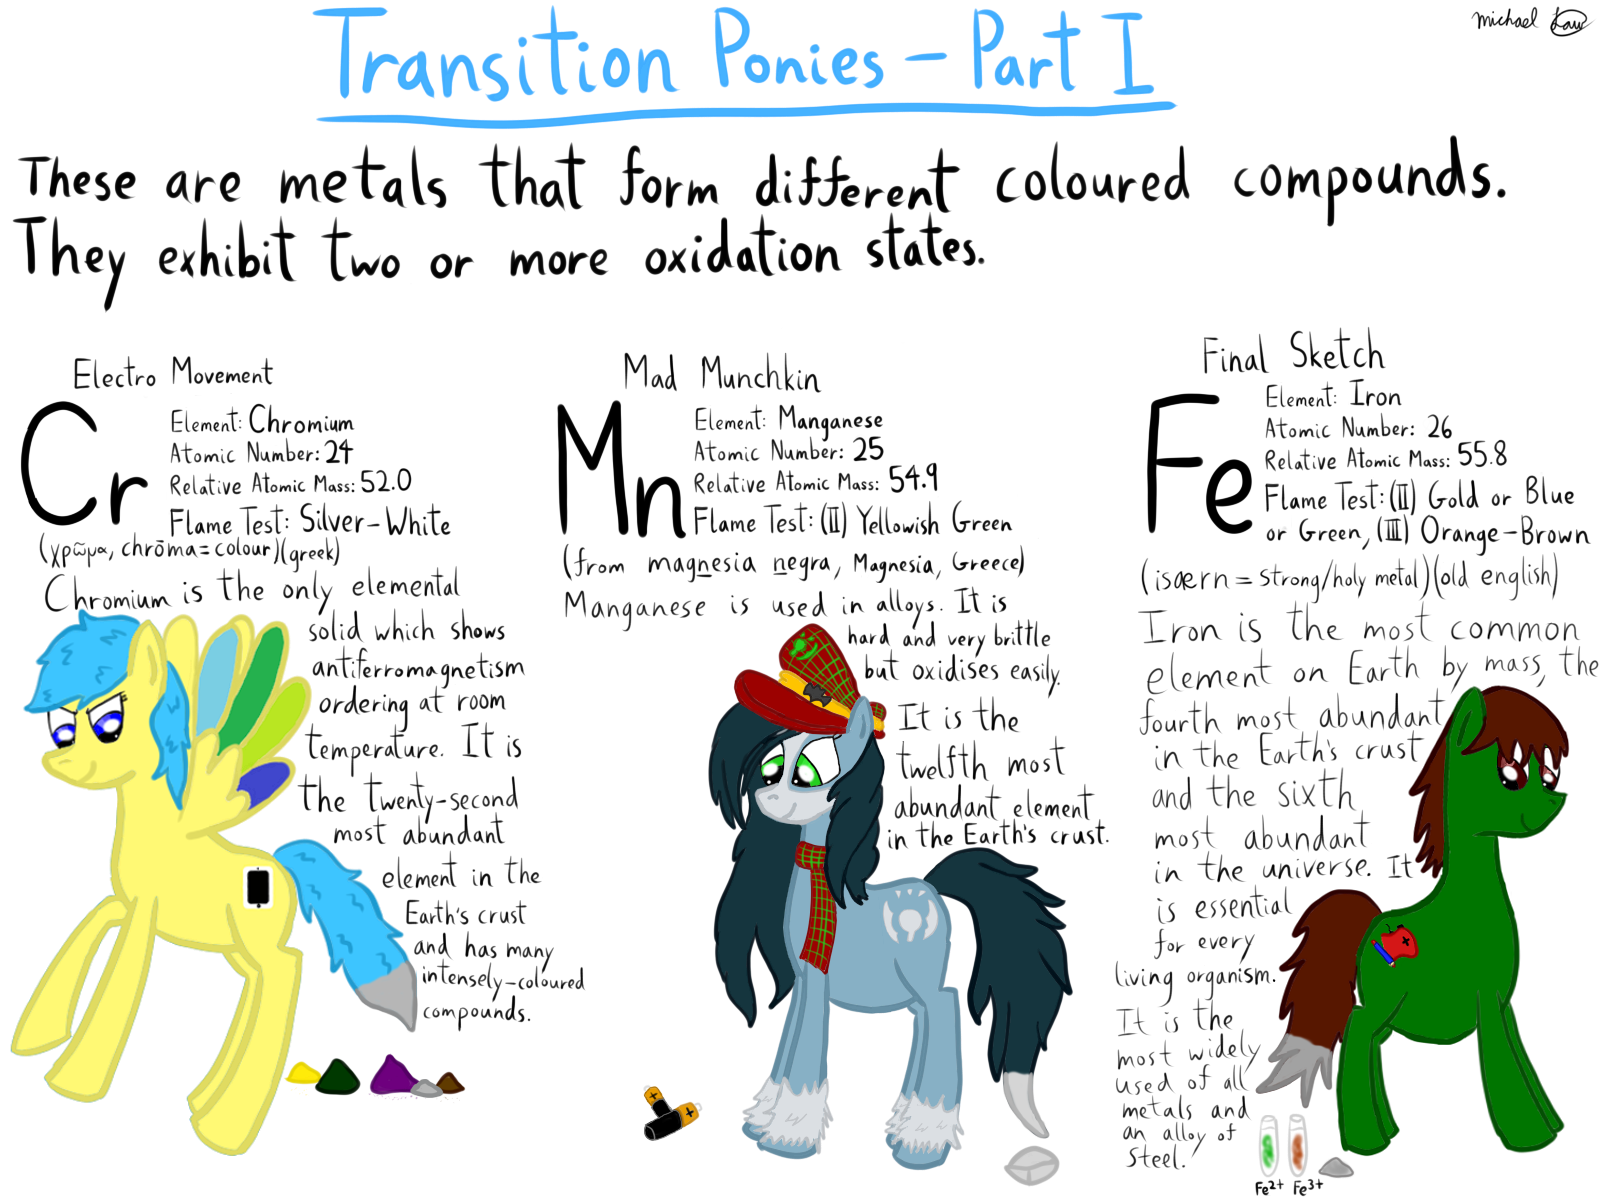 Periodic table of ocs transition ponies 1 by michylawhty on deviantart periodic table of ocs transition ponies 1 by michylawhty urtaz Gallery